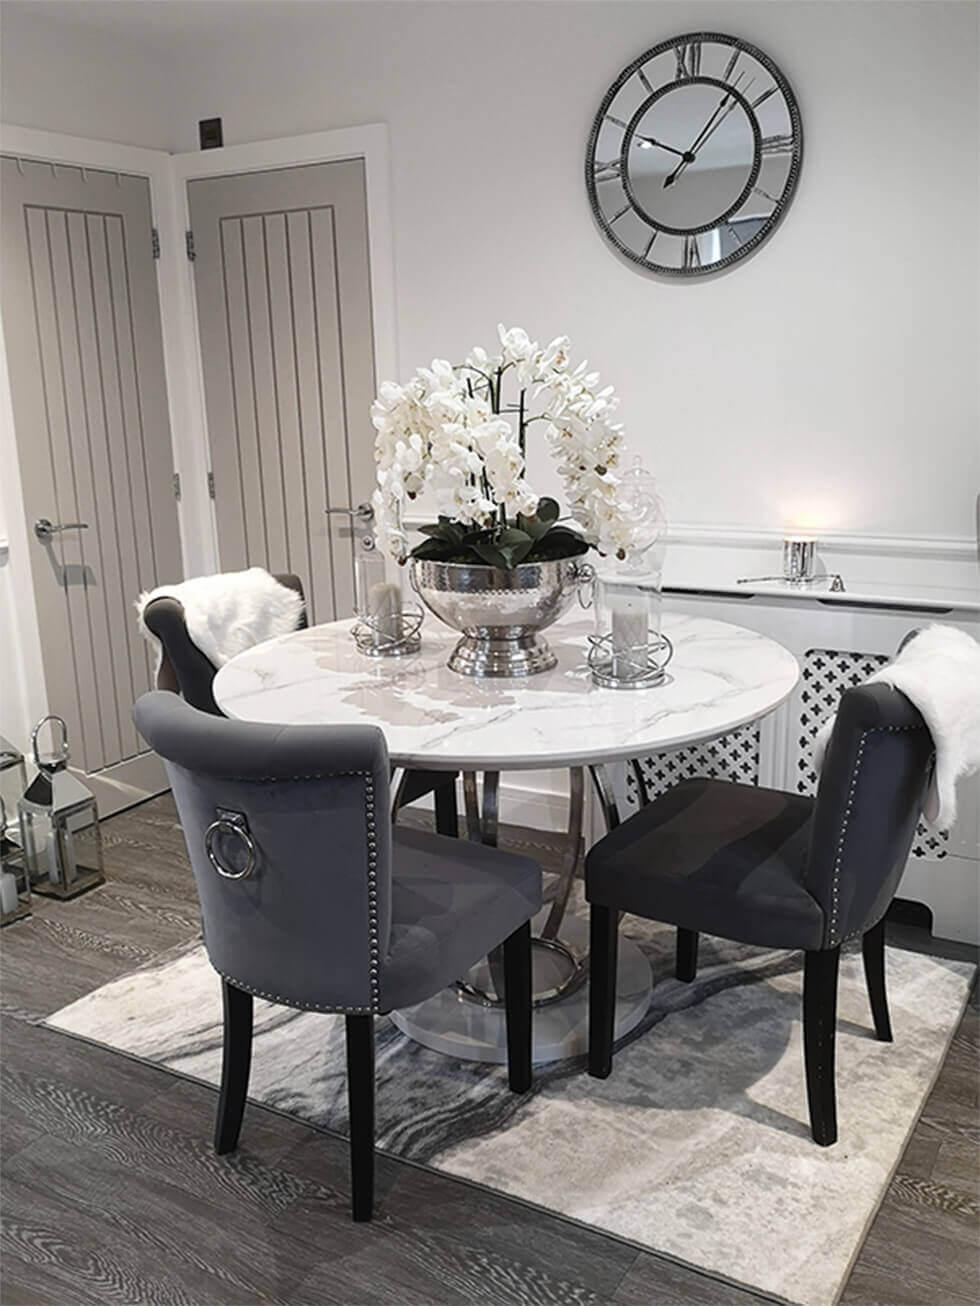 Dining room with a large faux orchid white centrepiece